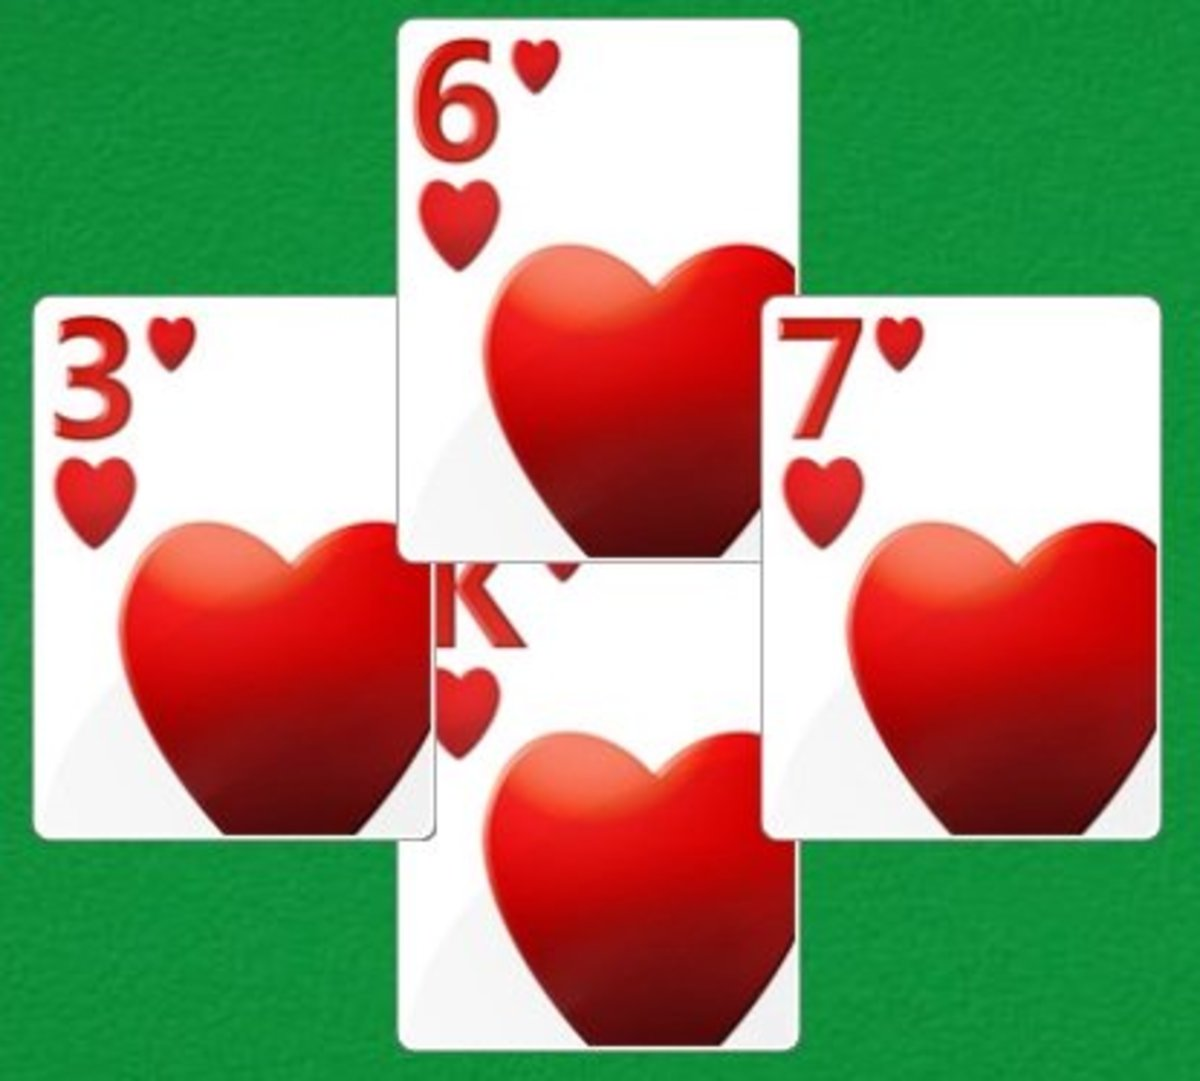 How to Play the Card Game of Hearts on the Computer